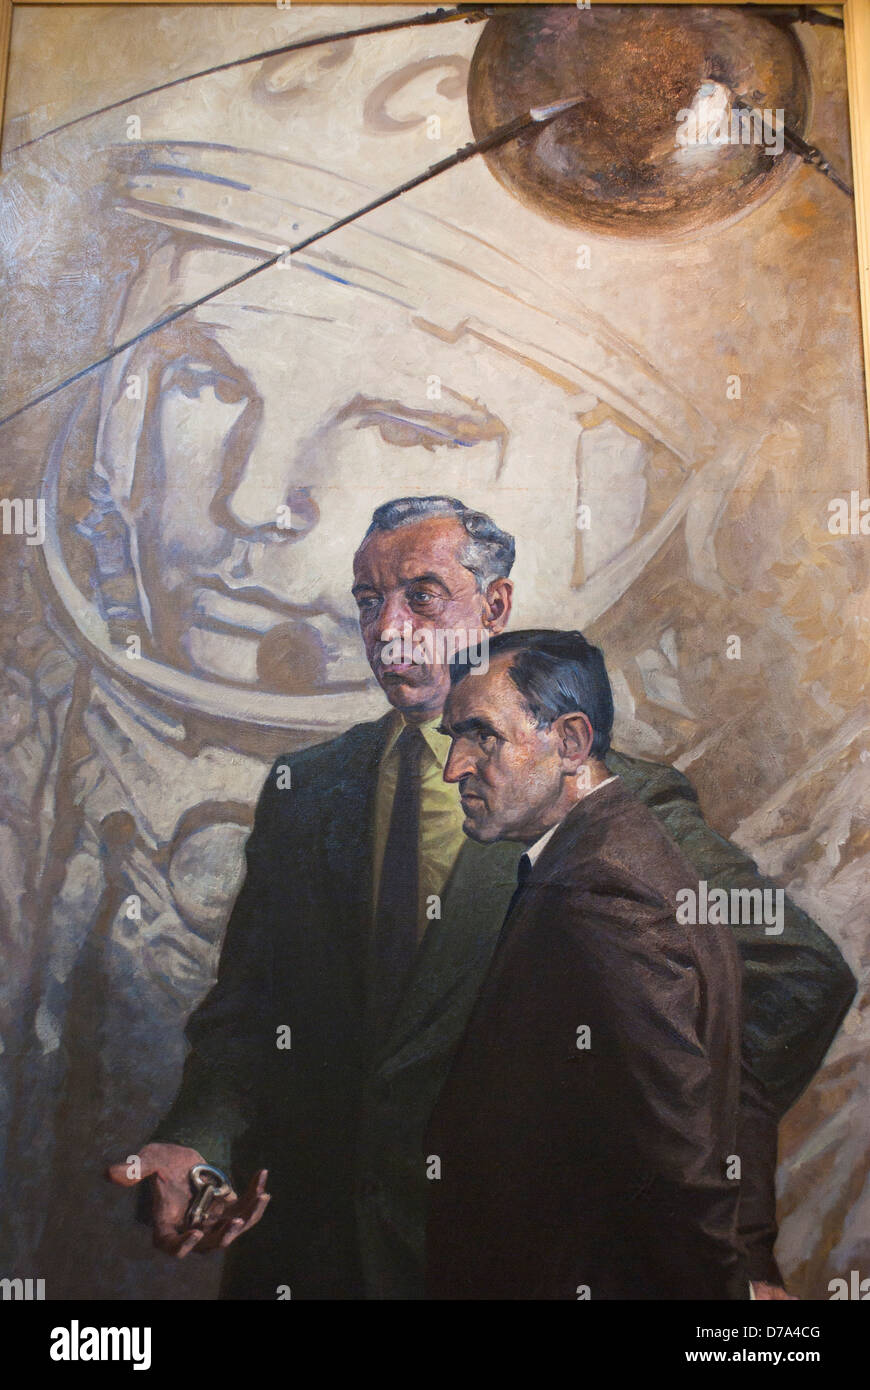 Painting on display in museum showing Sputnik Gagarin Soviet engineers one holding launch key symbolizing Key To - Stock Image